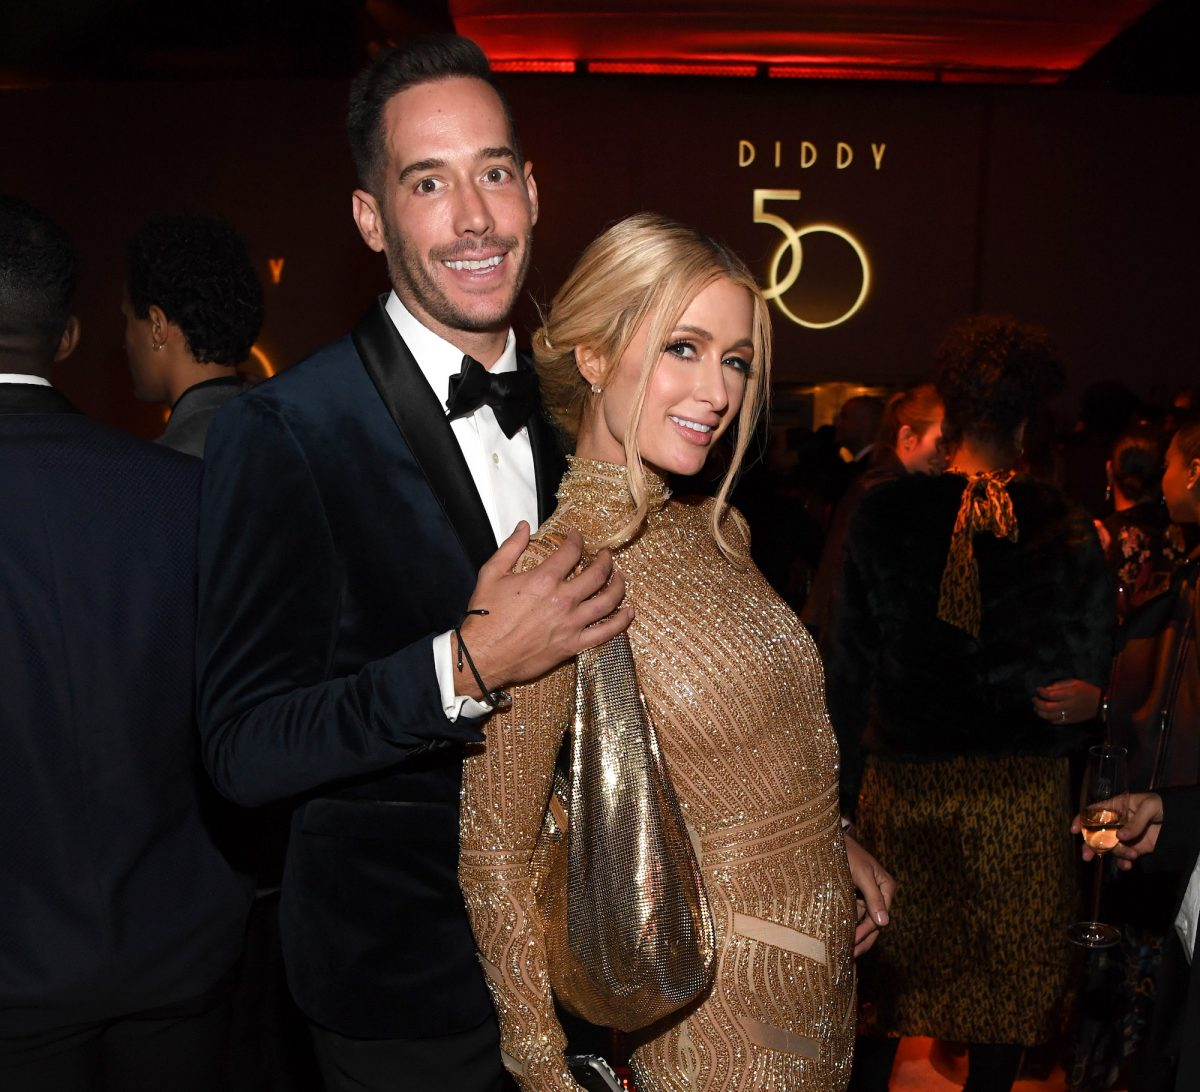 Carter Reum and Paris Hilton attending Sean Combs' 50th Birthday Bash in 2019